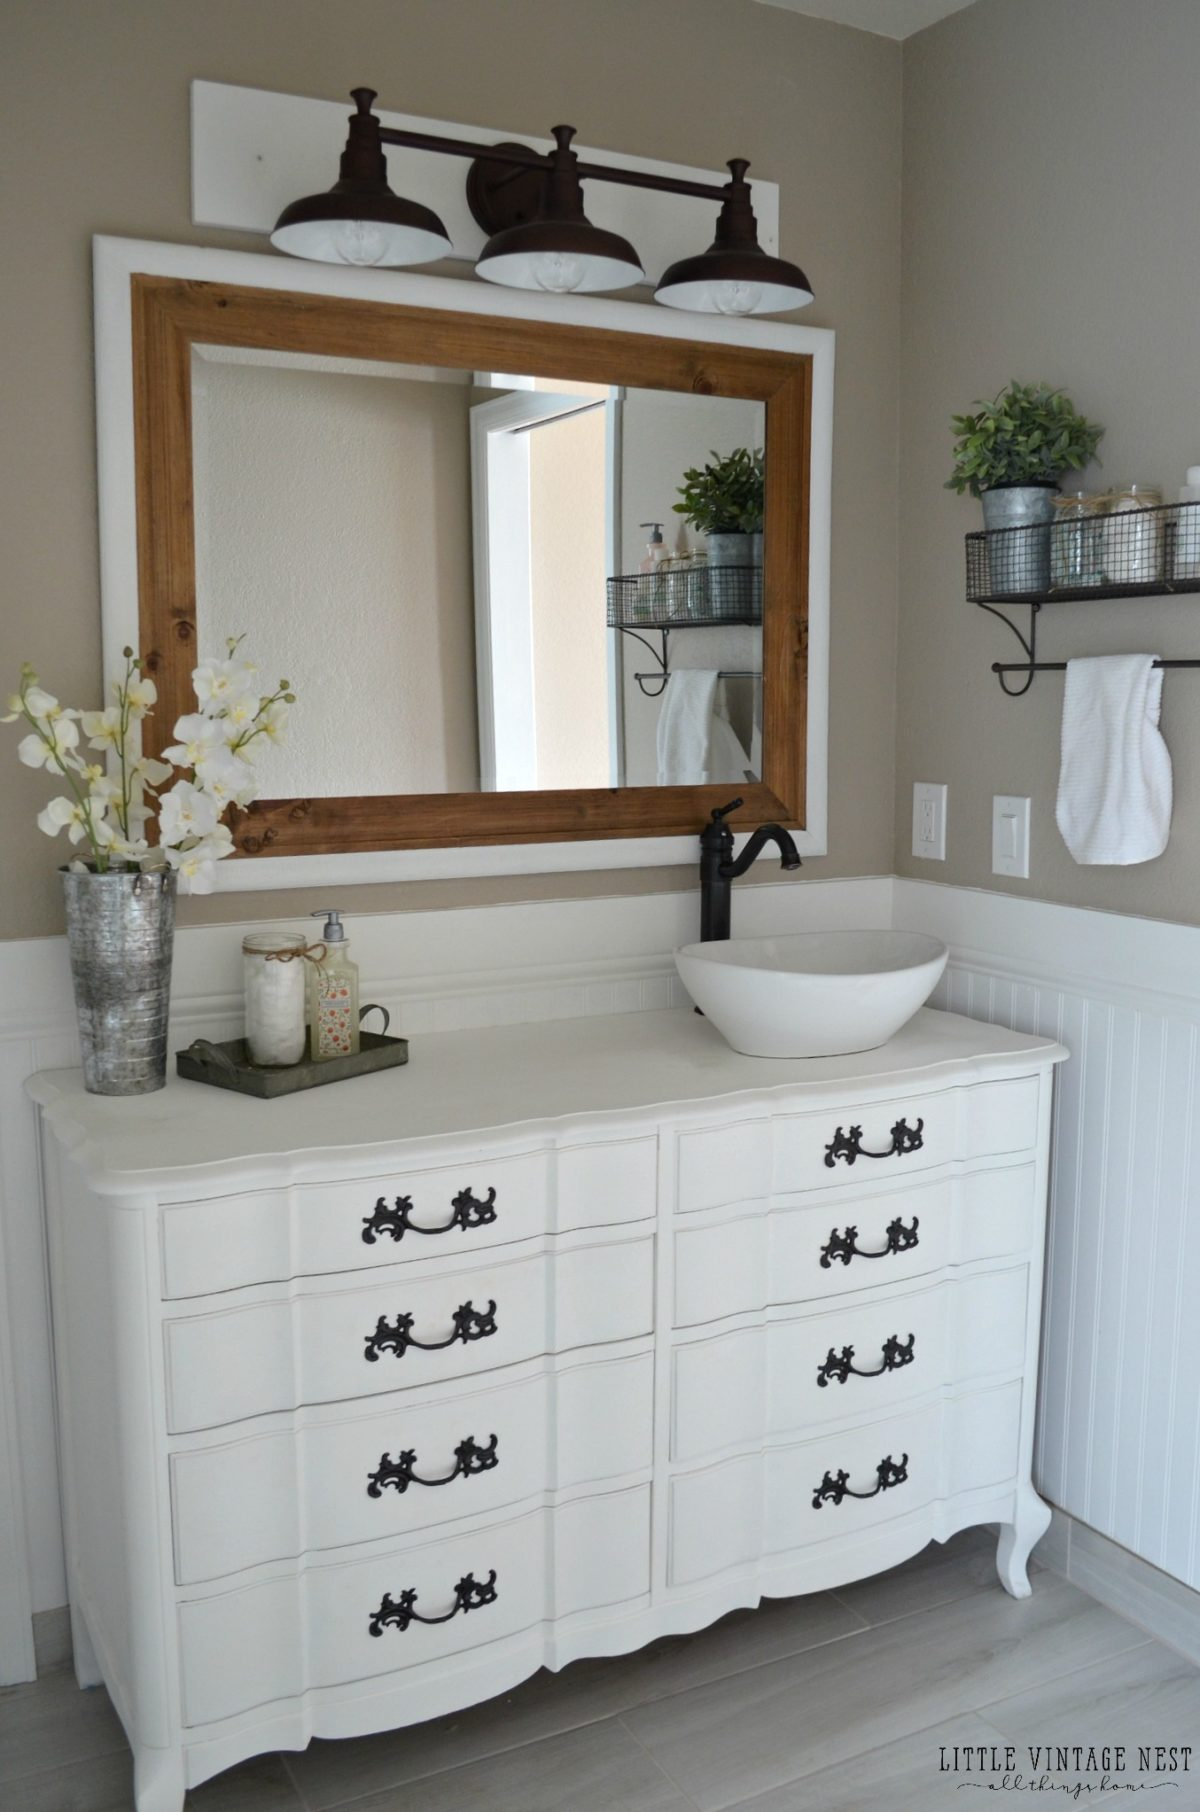 Vintage Bathroom Vanity - Farmhouse bathroom vanity and farmhouse light vintage farmhouse bathroom